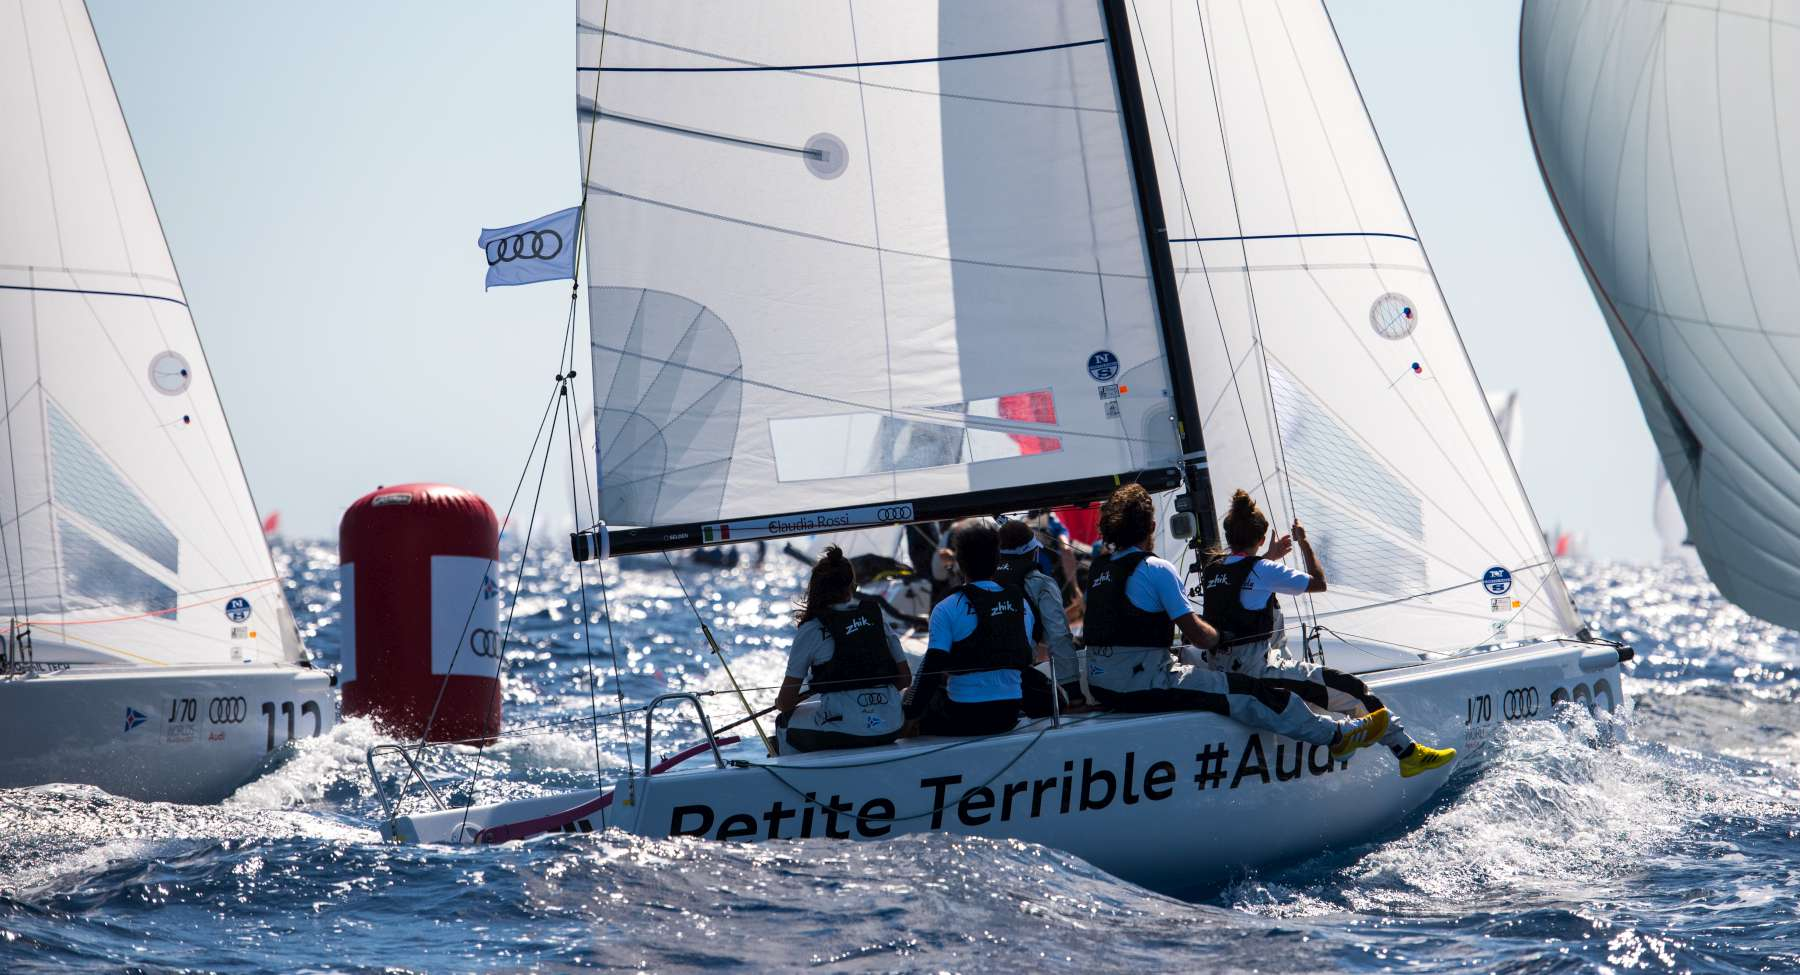 Audi J/70 World Championship - Video Day 4 online - NEWS - Yacht Club Costa Smeralda